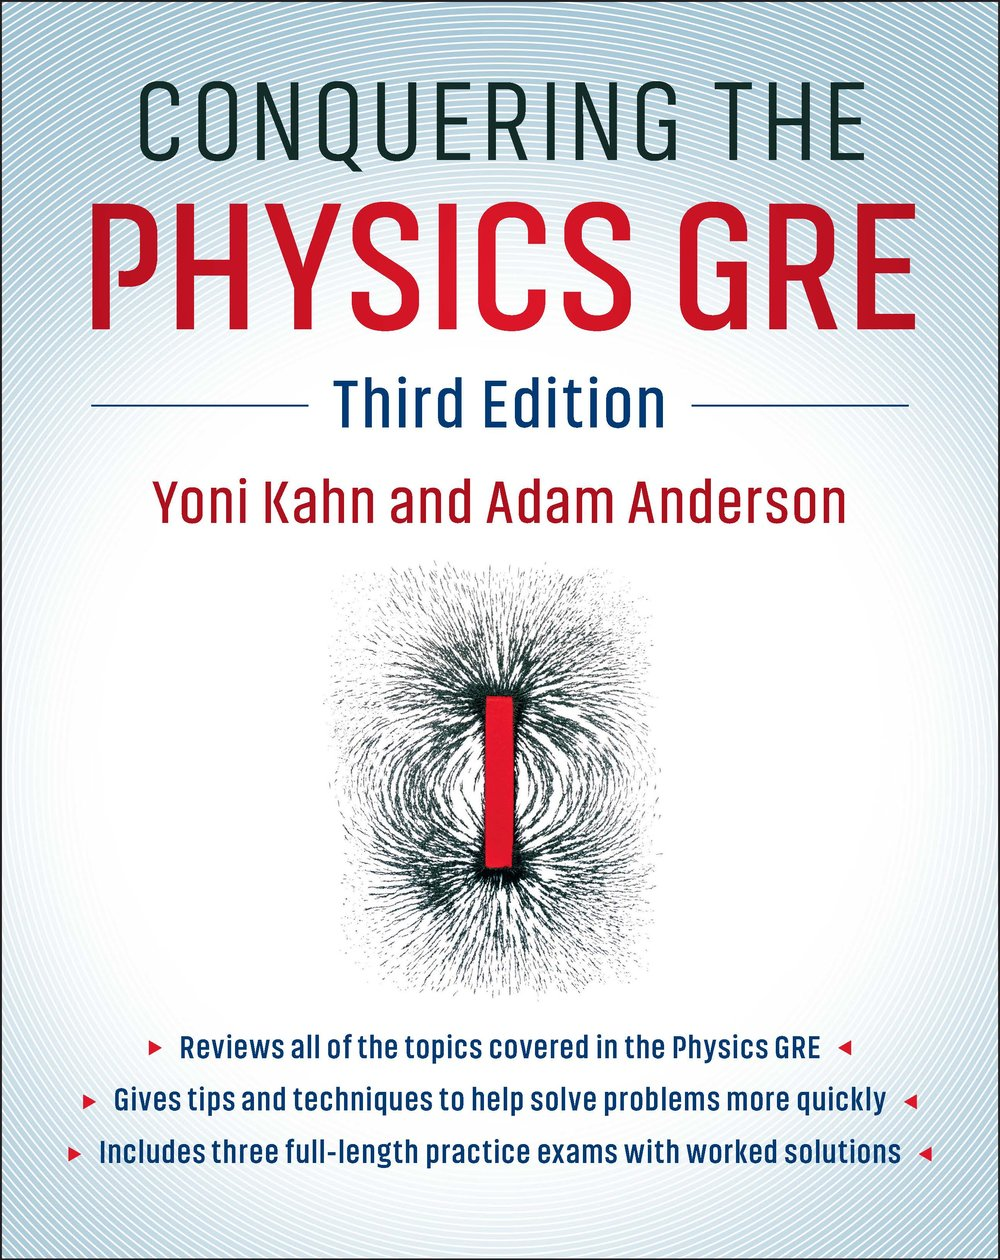 Conquering the Physics GRE_Cover.jpg